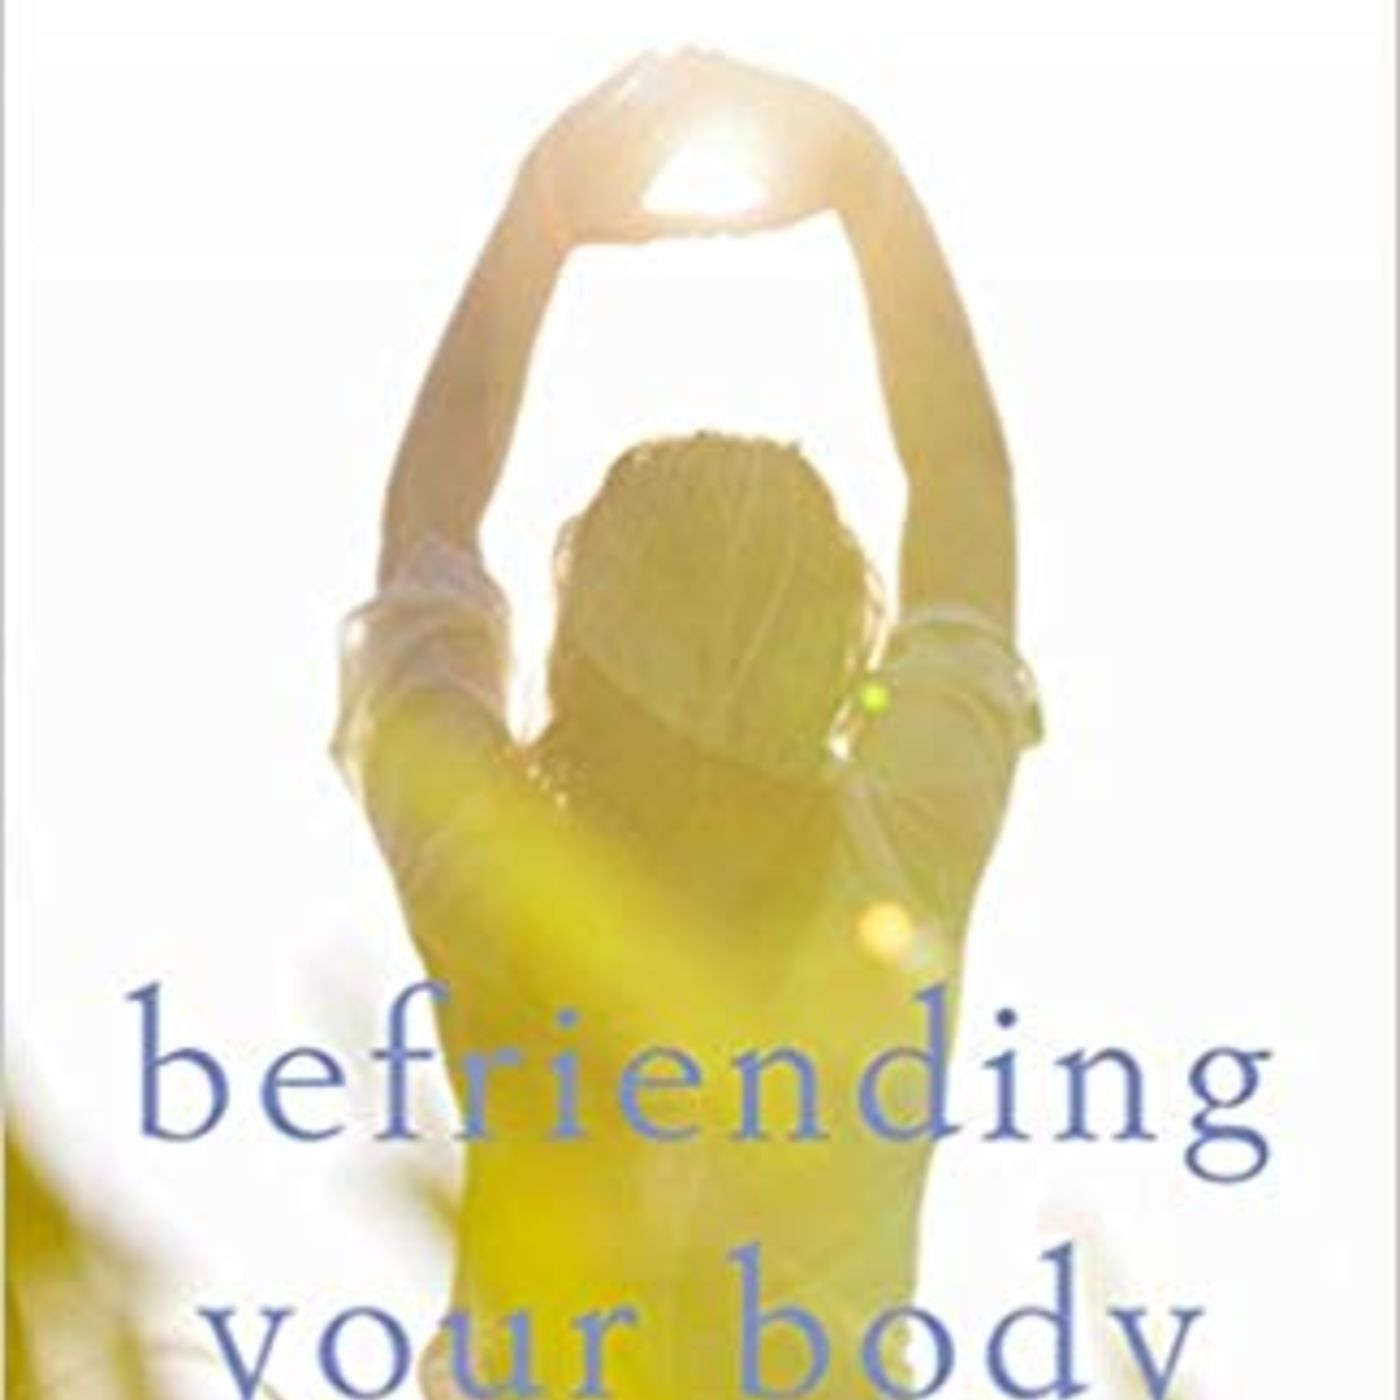 Befriending Your Body: Self Compassion/Self Care